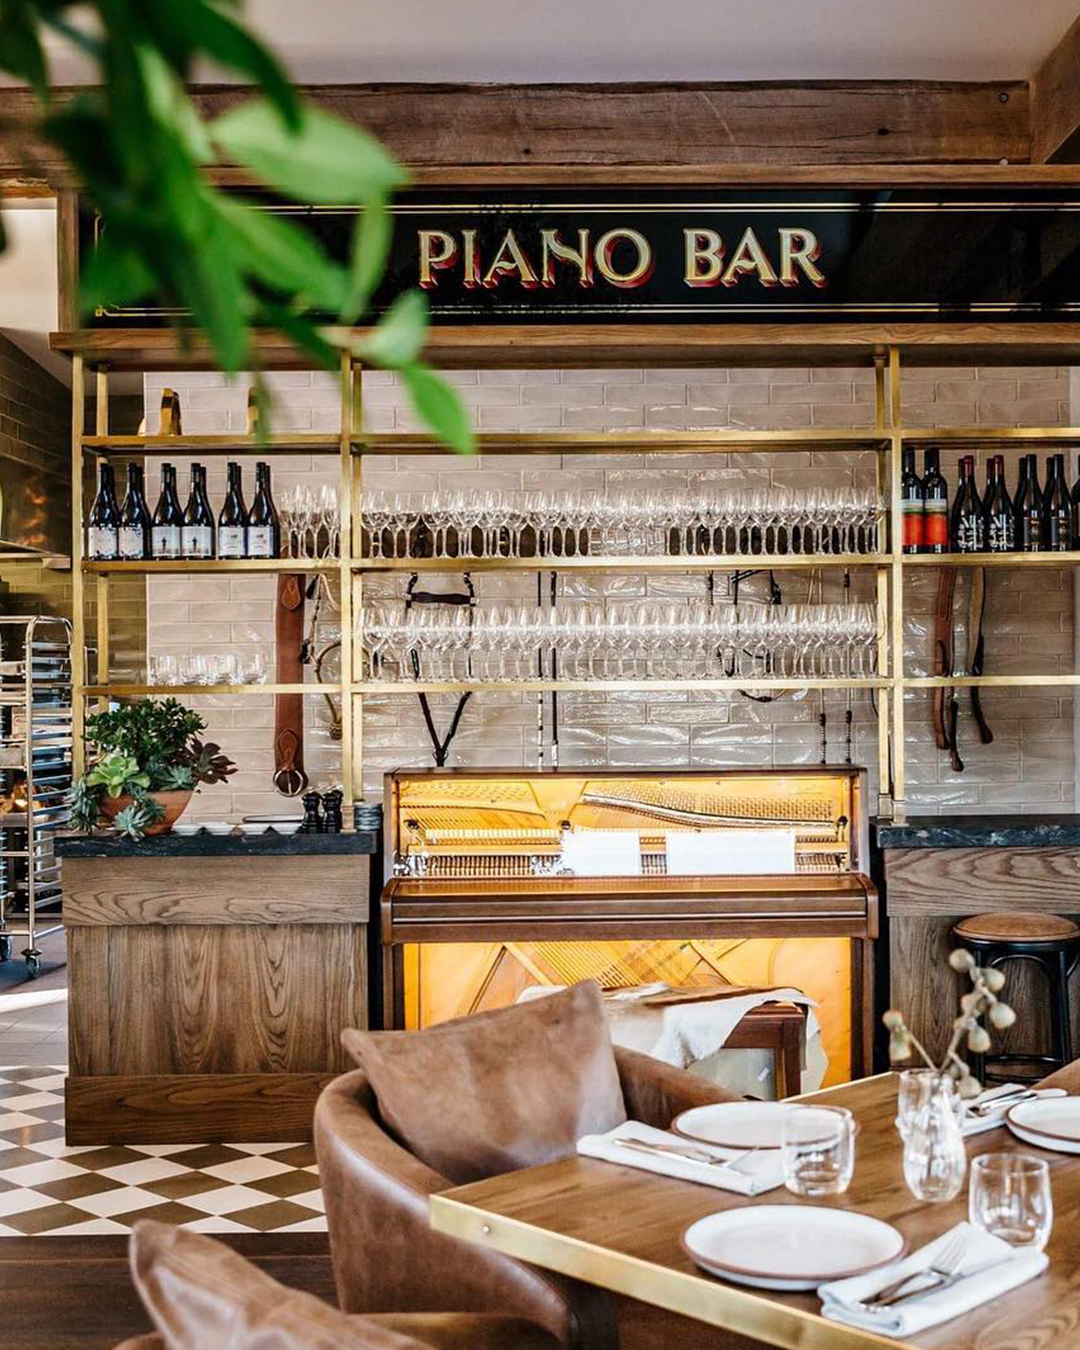 An retro-style piano bar with checked flooring tiles and plush, leather seats around it.